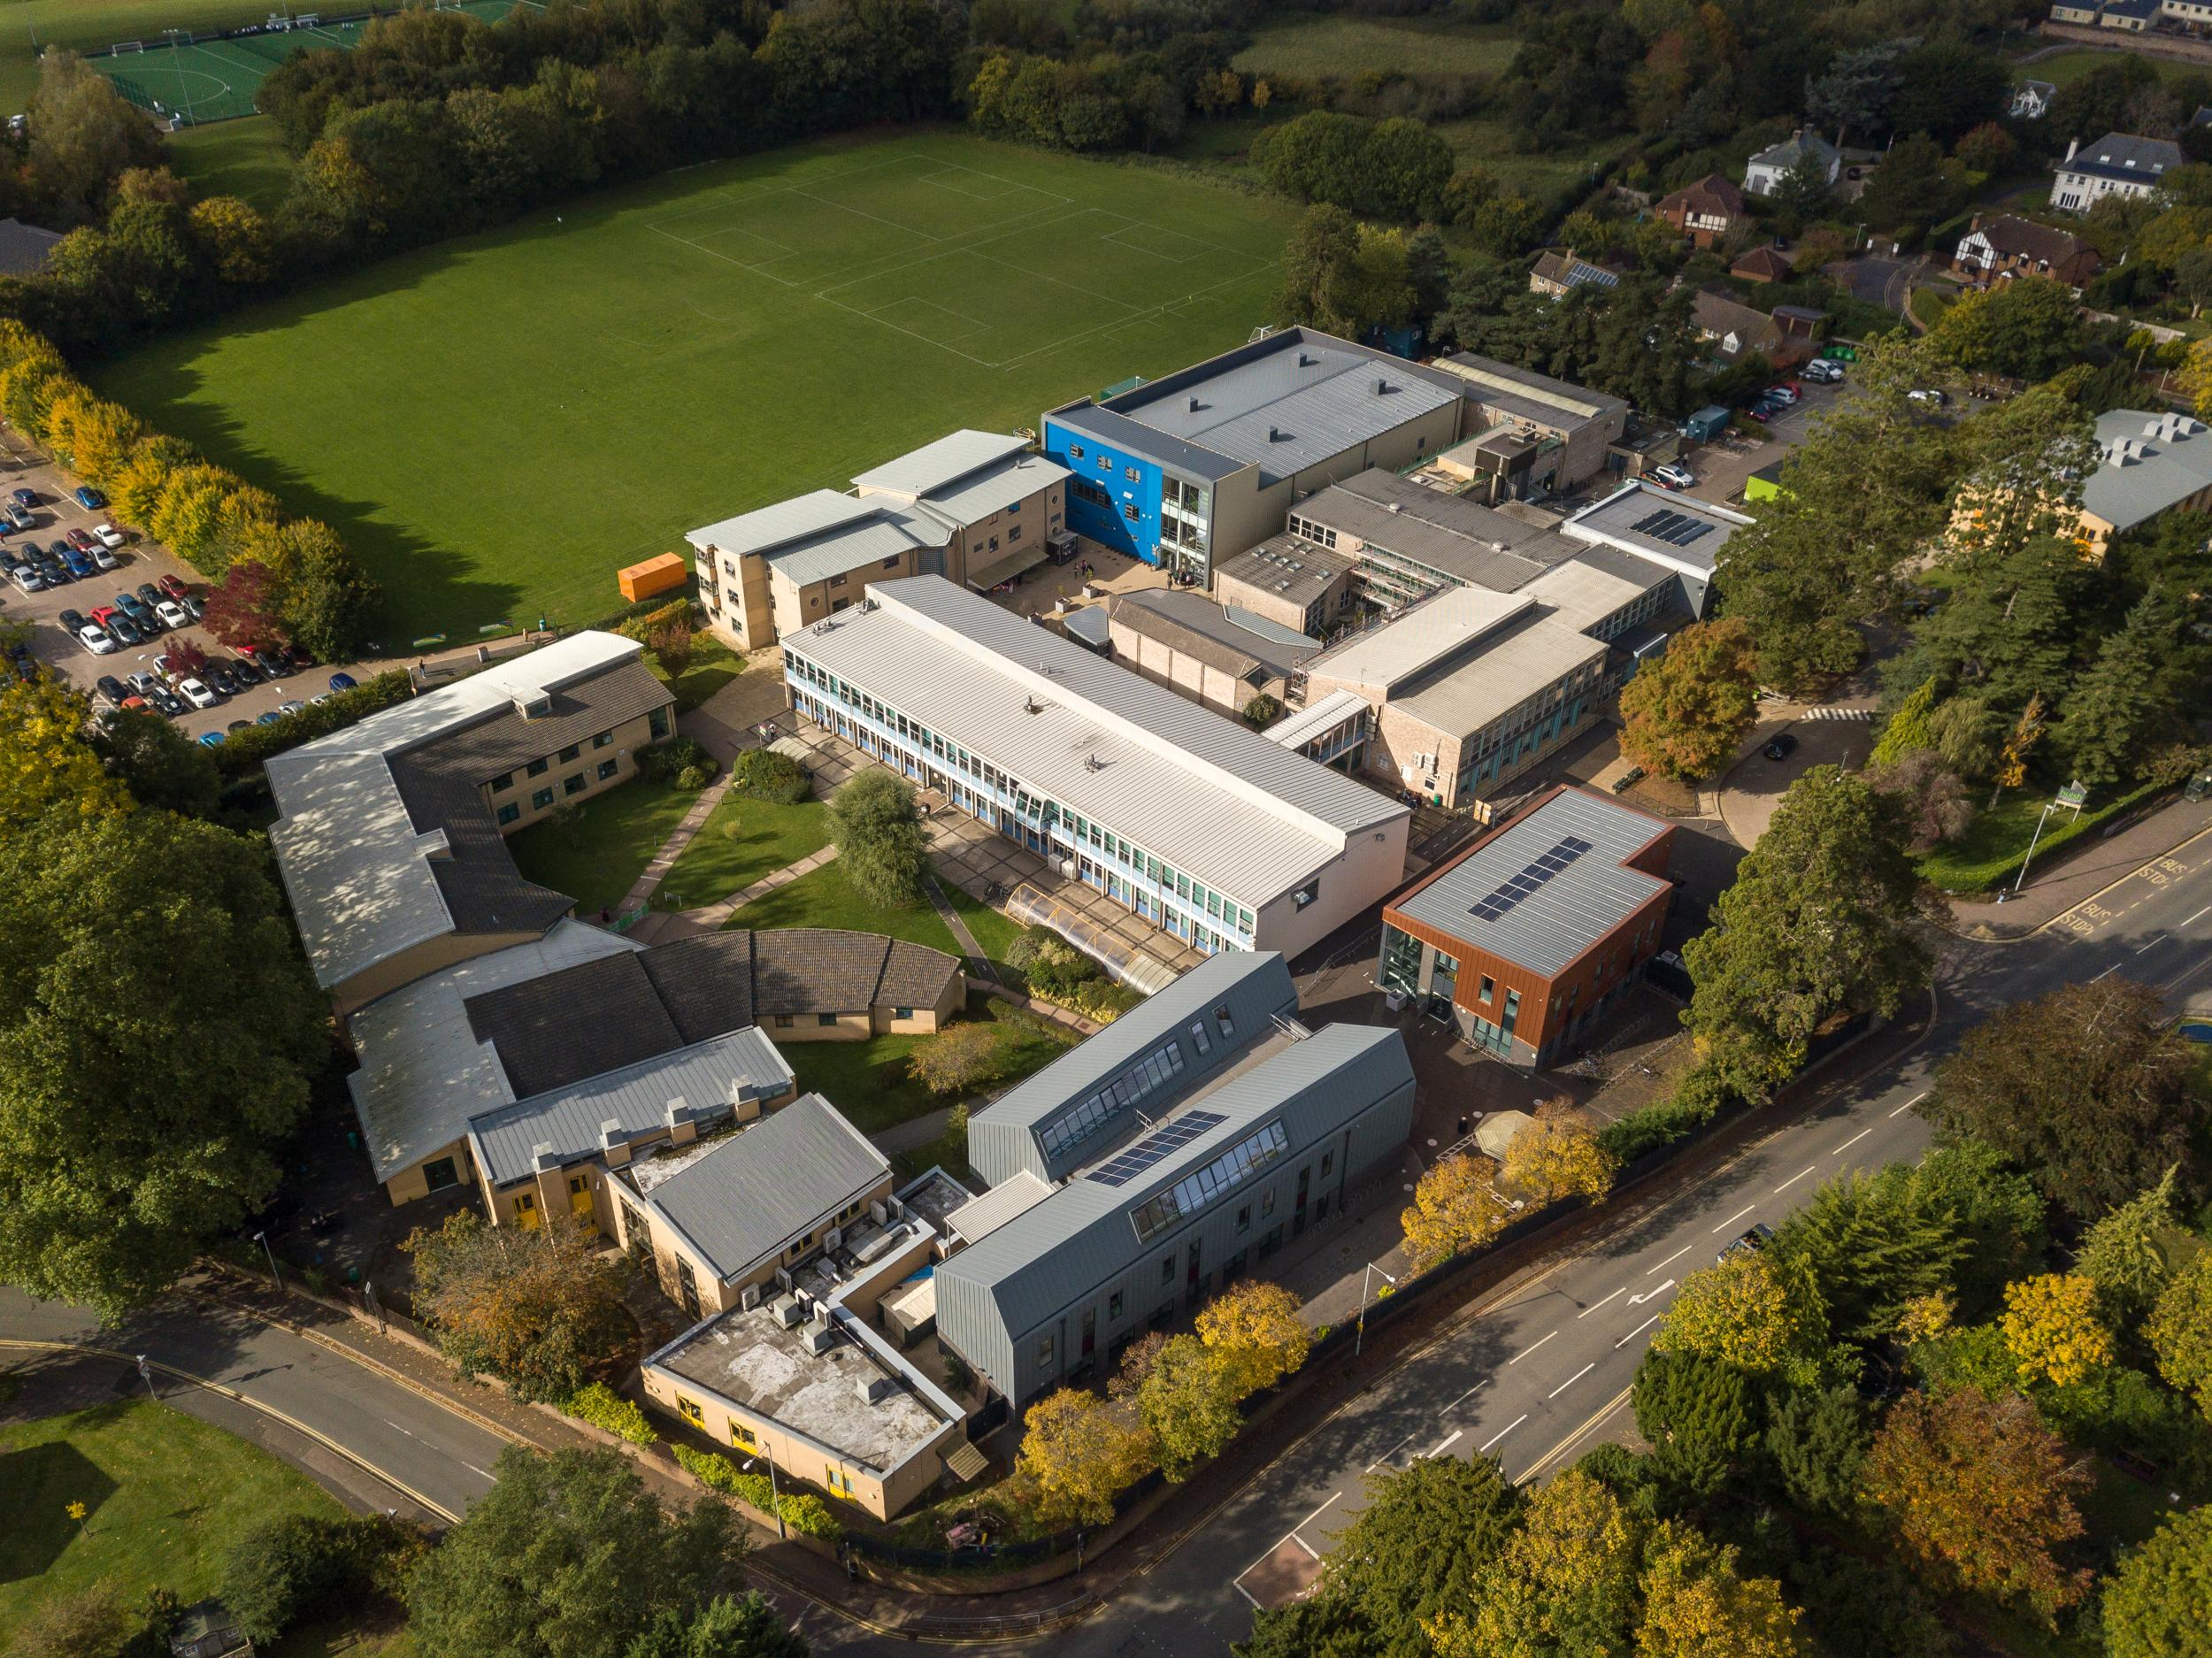 Aerial View of the Richard Huish Campus